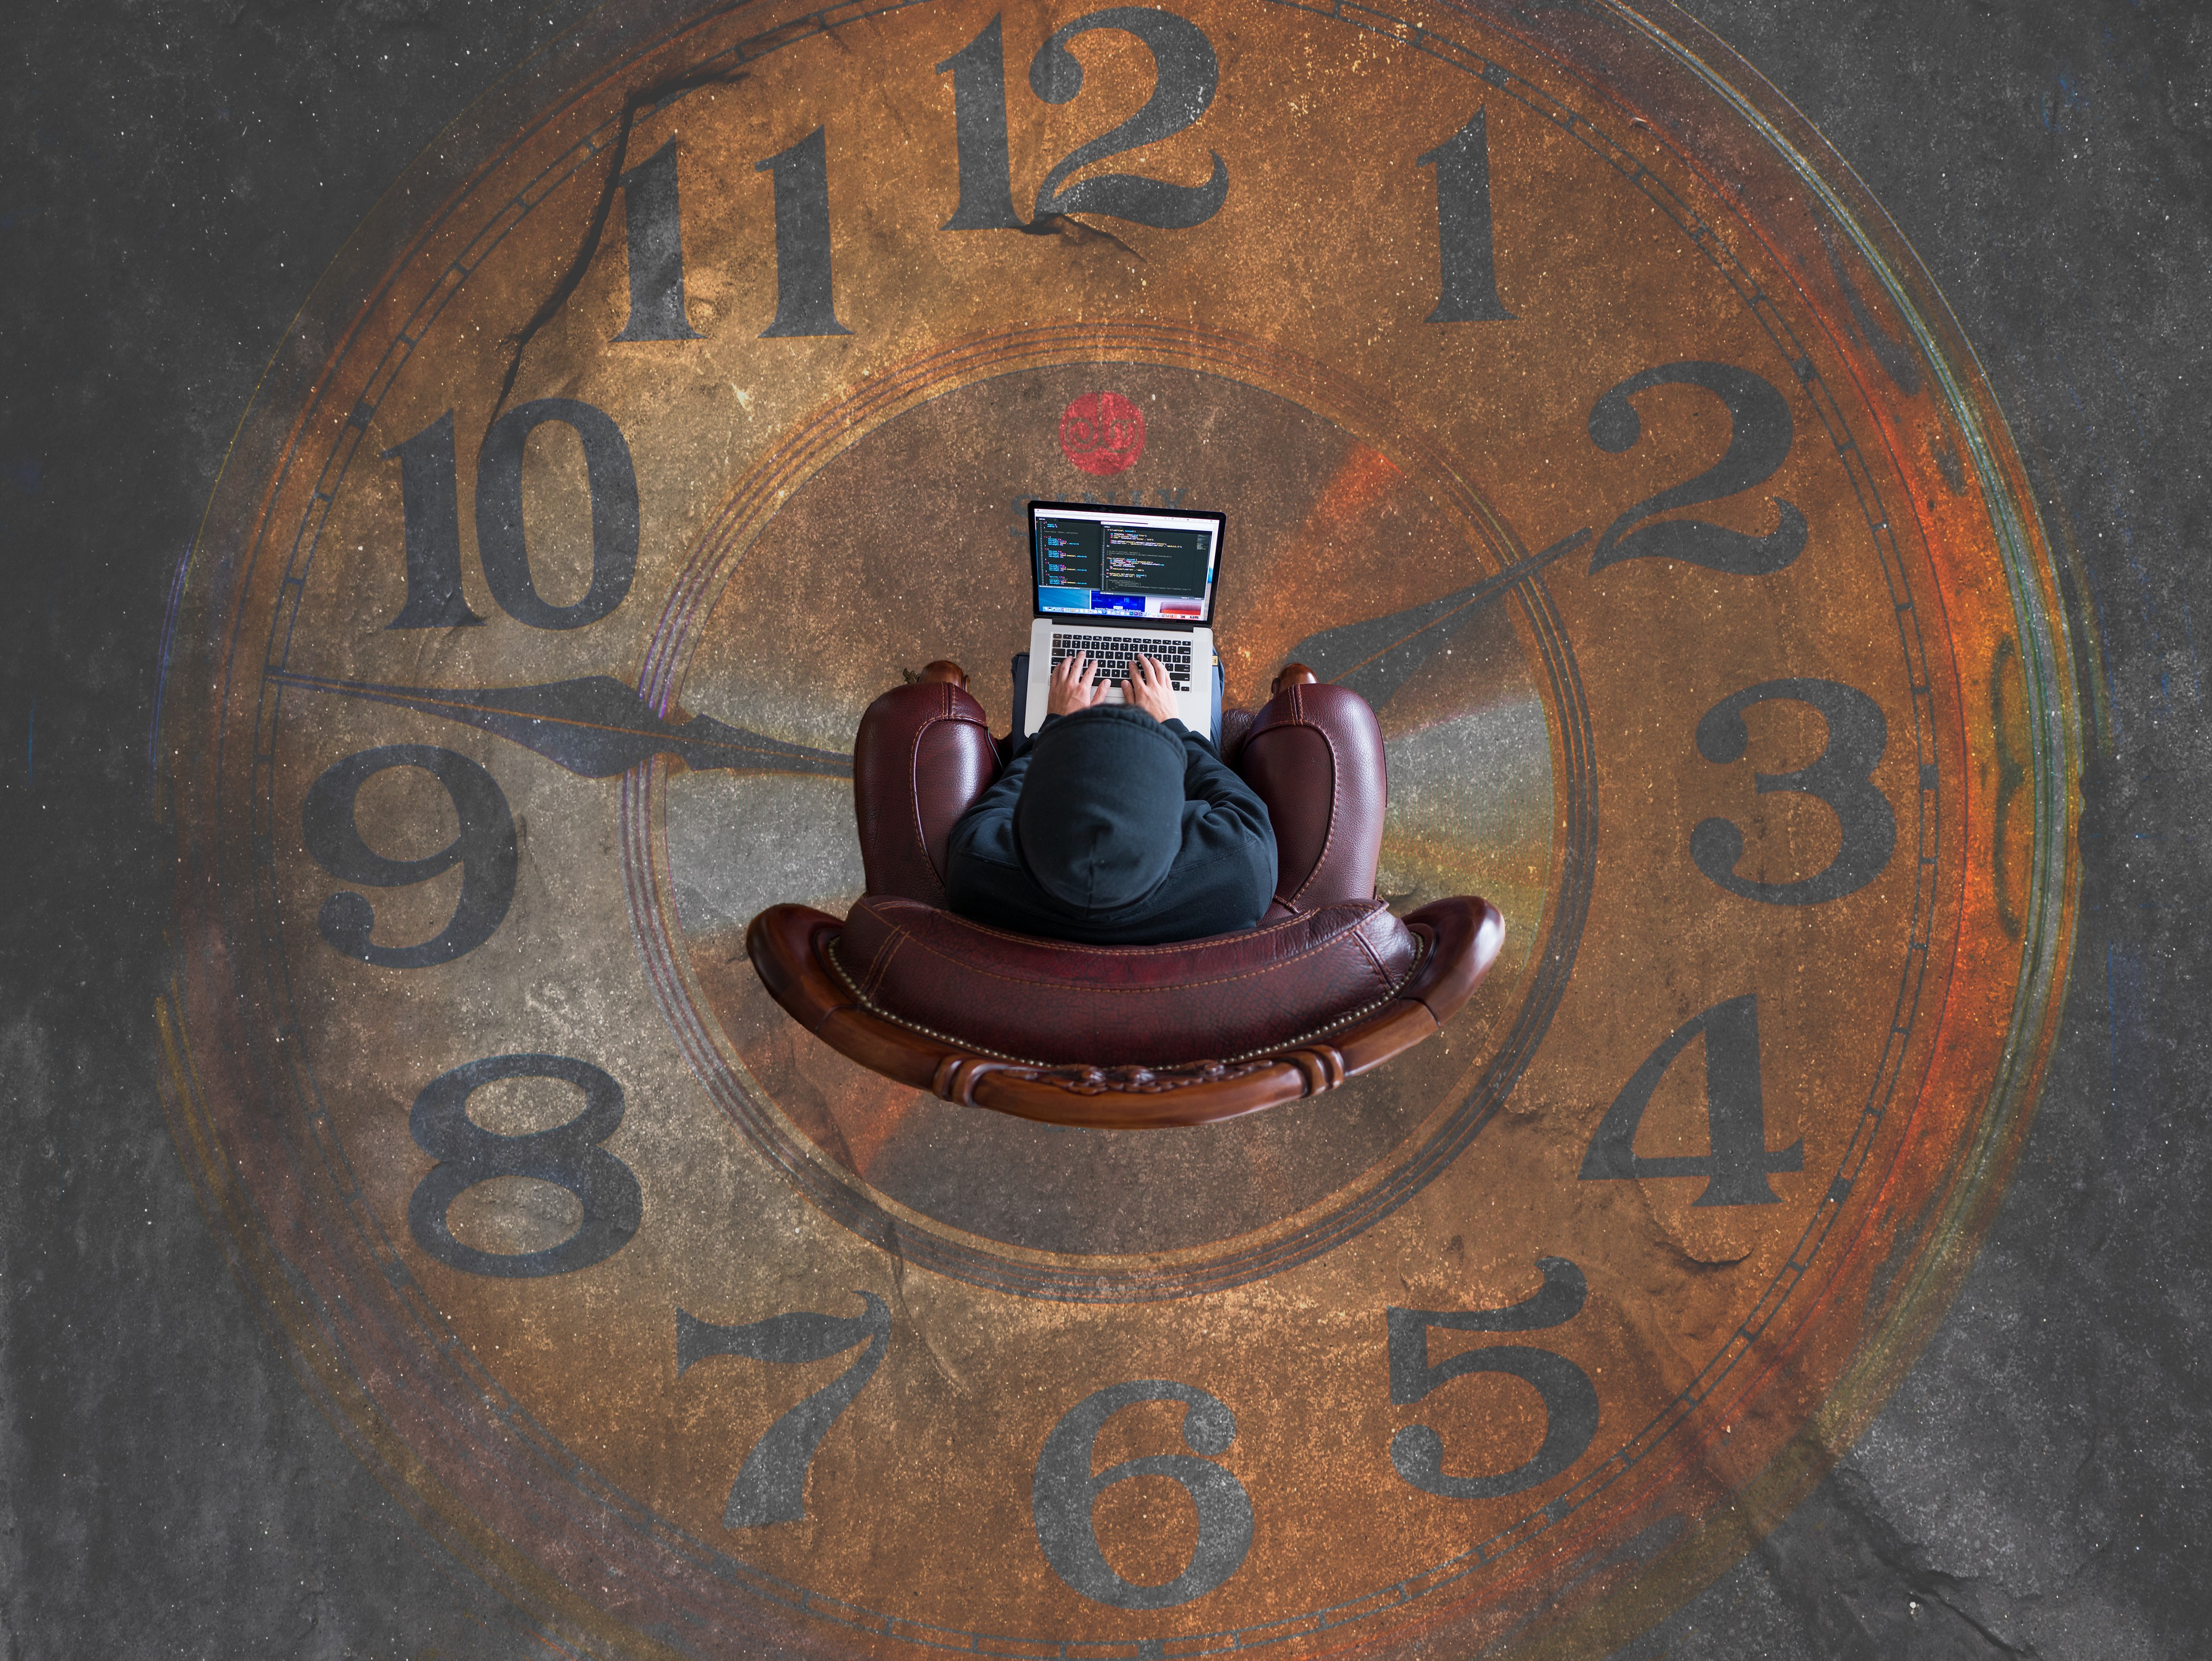 Person sitting on chair wearing hoodie, working on laptop. View is from above. Person is inside a clock. The time points 1:50